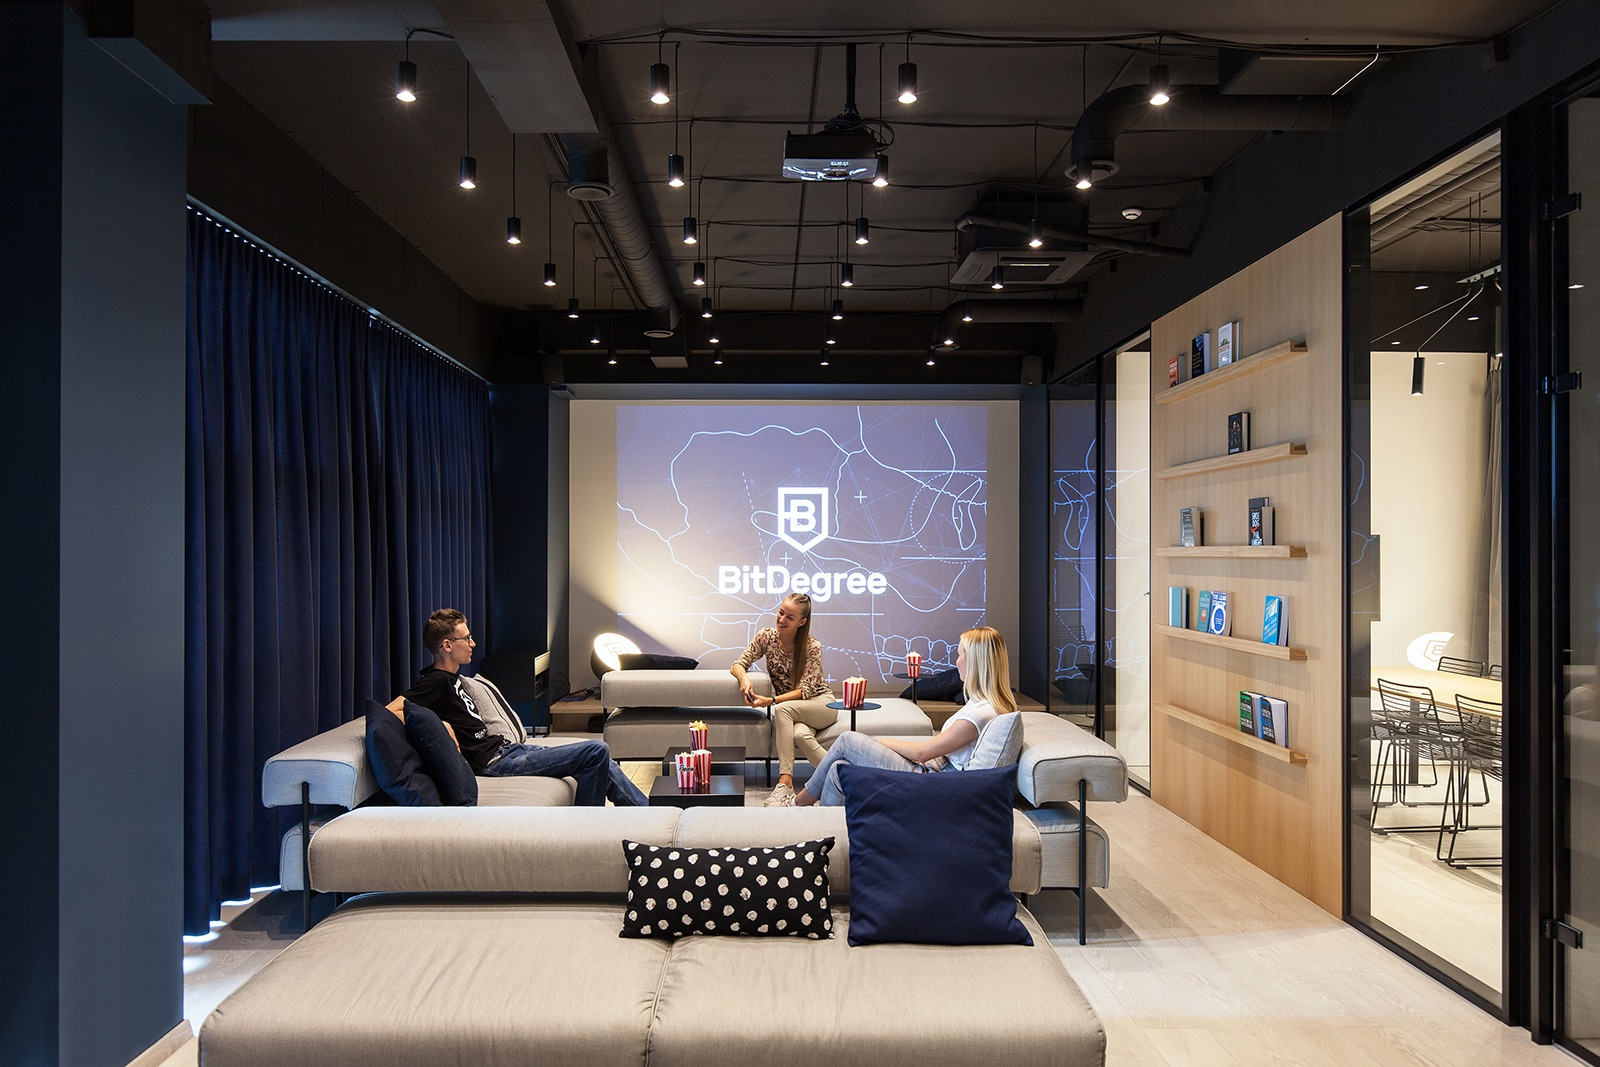 bitdegree-kaunas-office-12